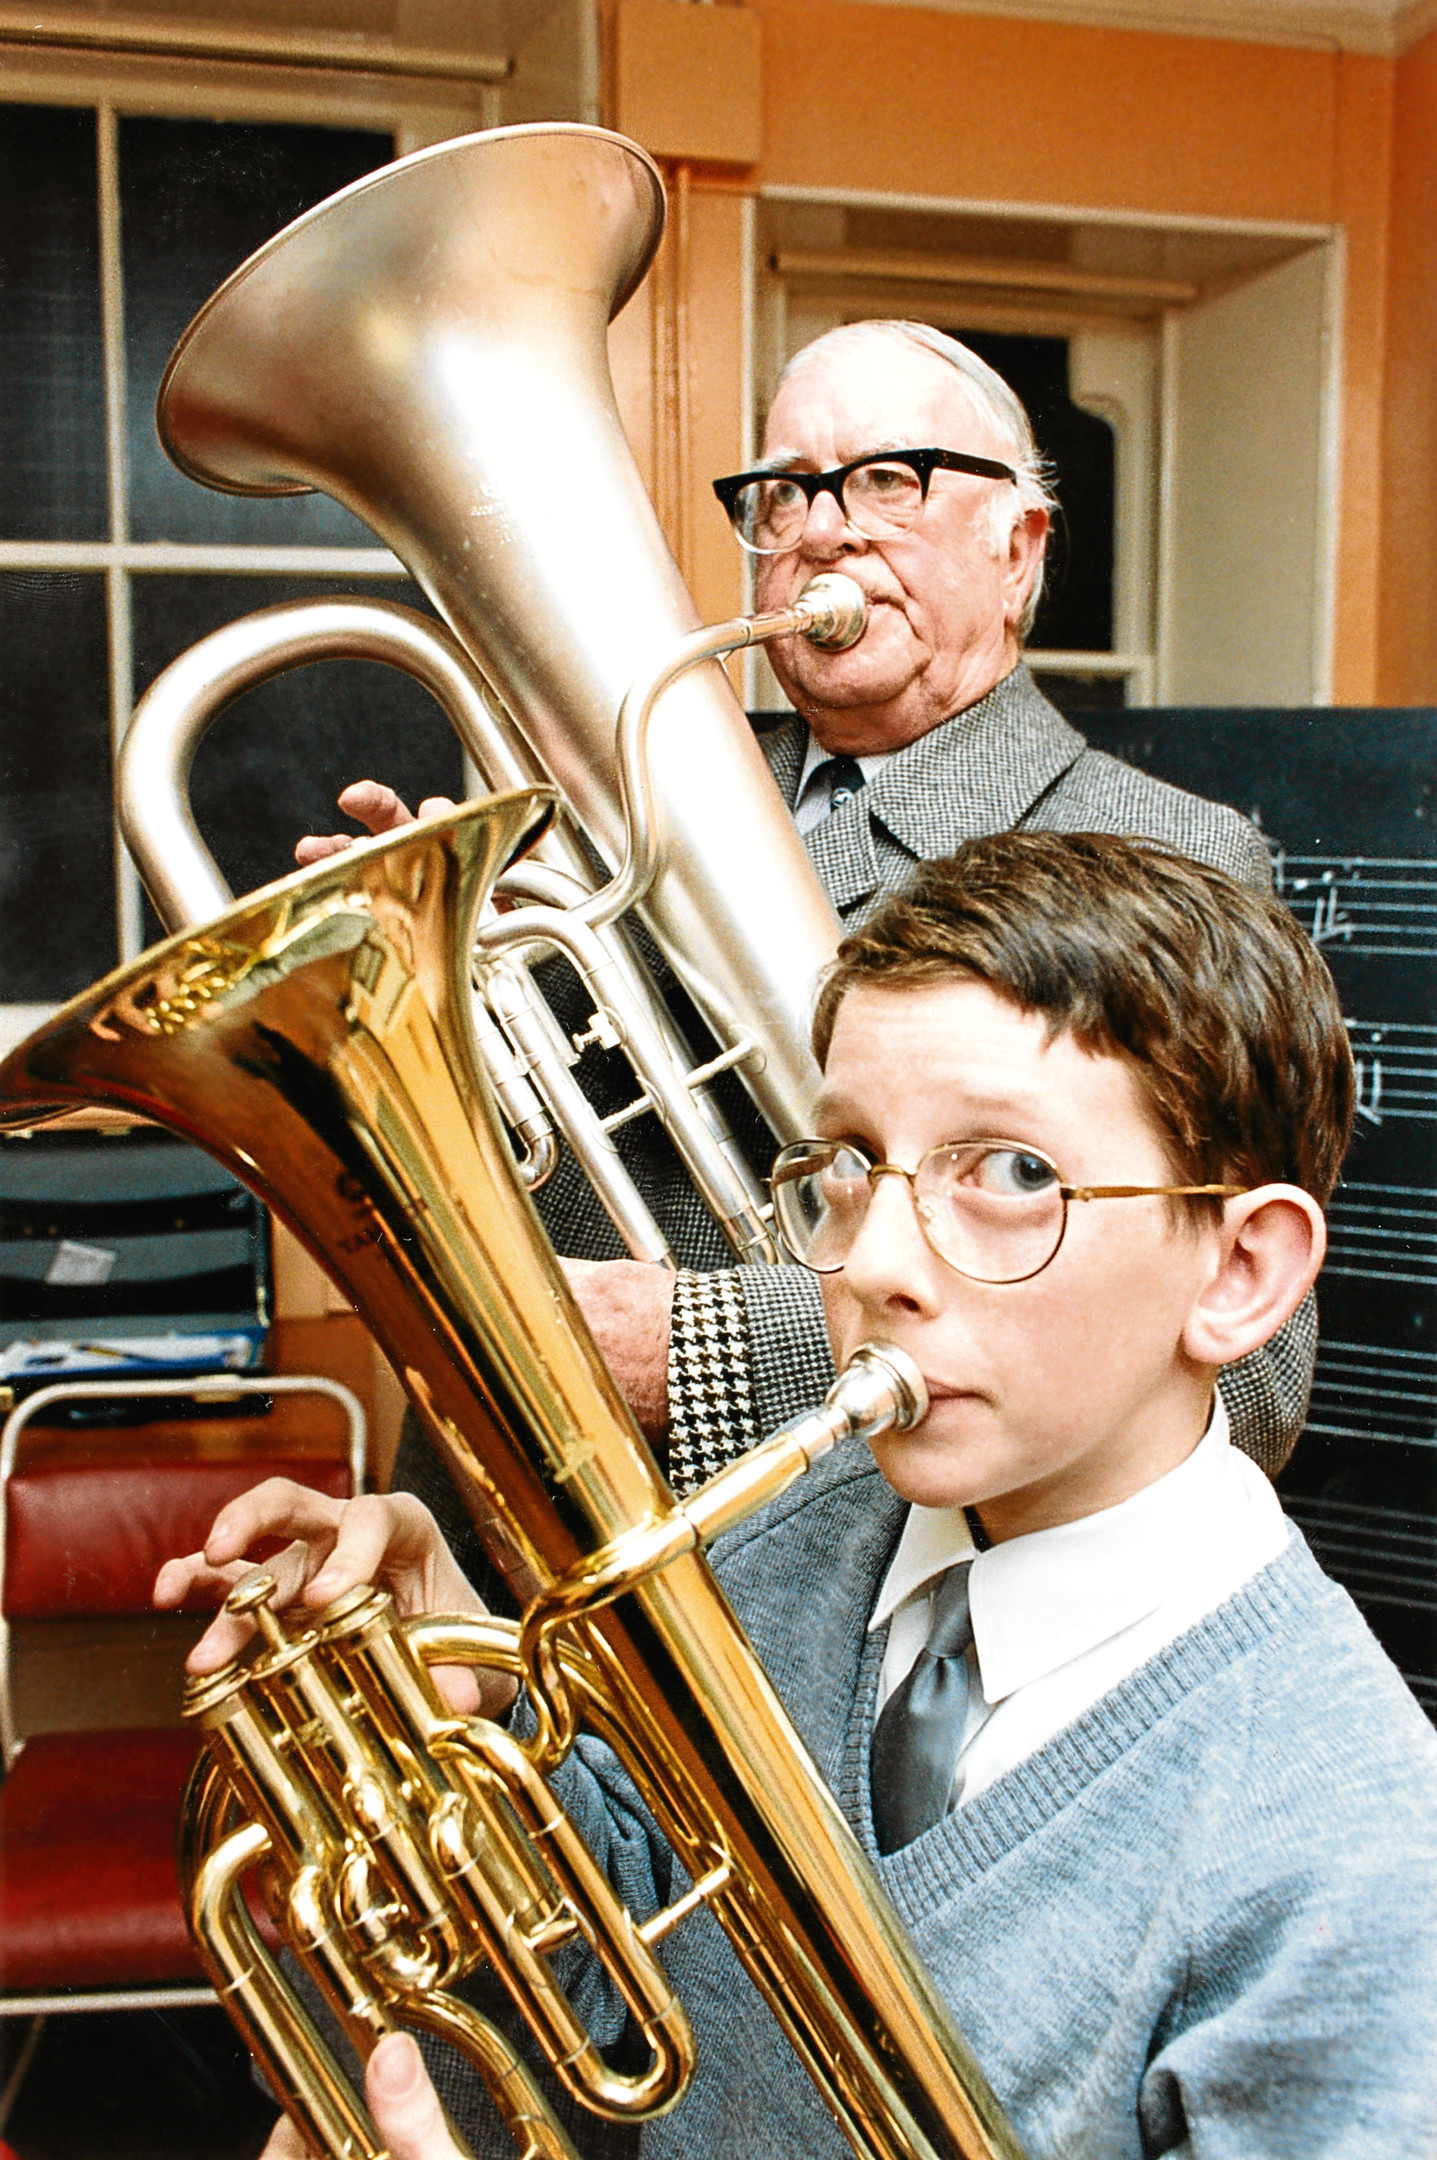 Archie Watt gives tips to Stuart Milton of the Boys' Brigade, Aberdeen Battalion silver band.